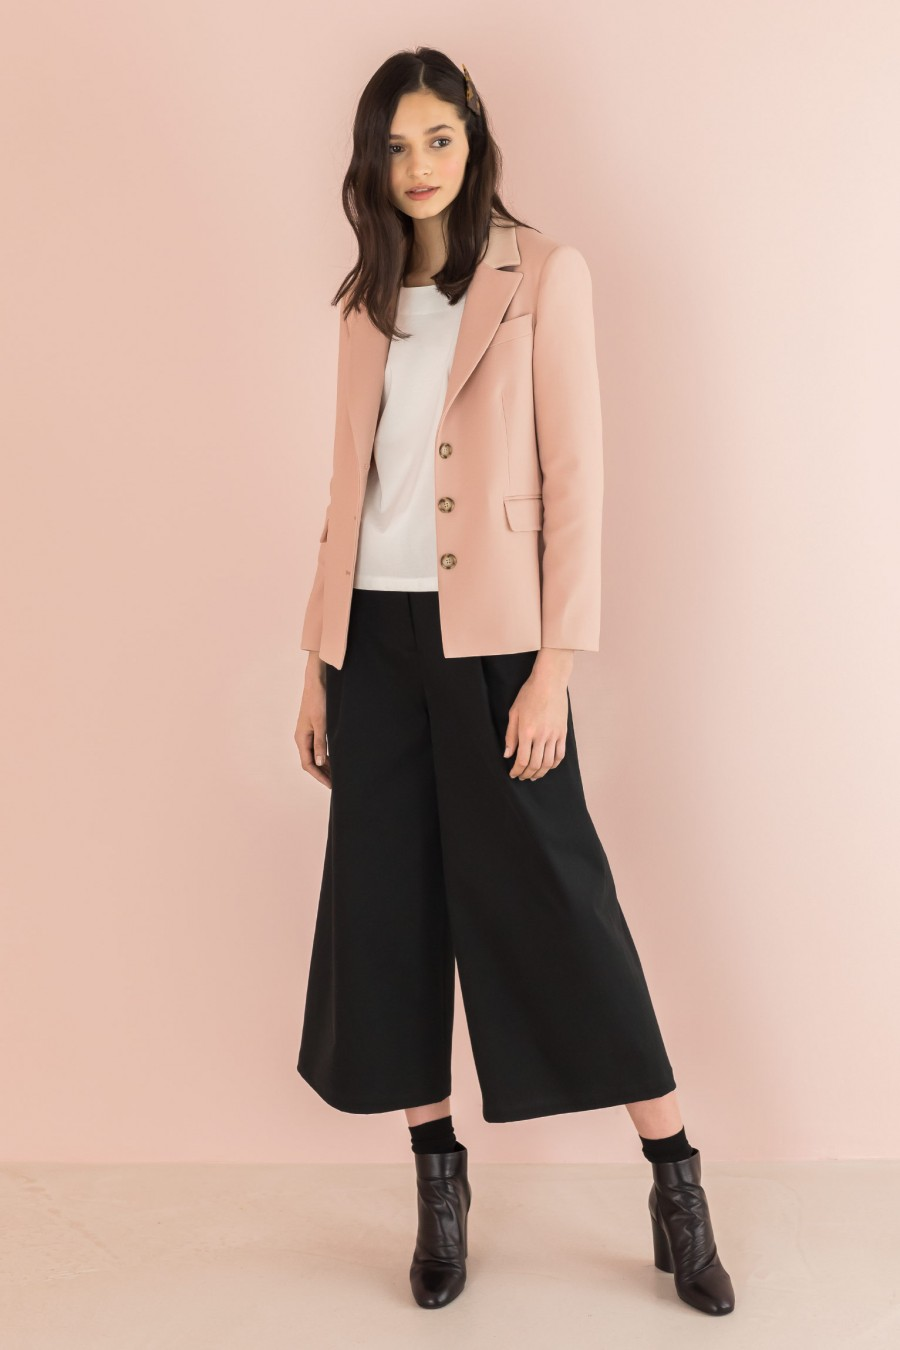 blush jacket tone-on-tone leather inserts